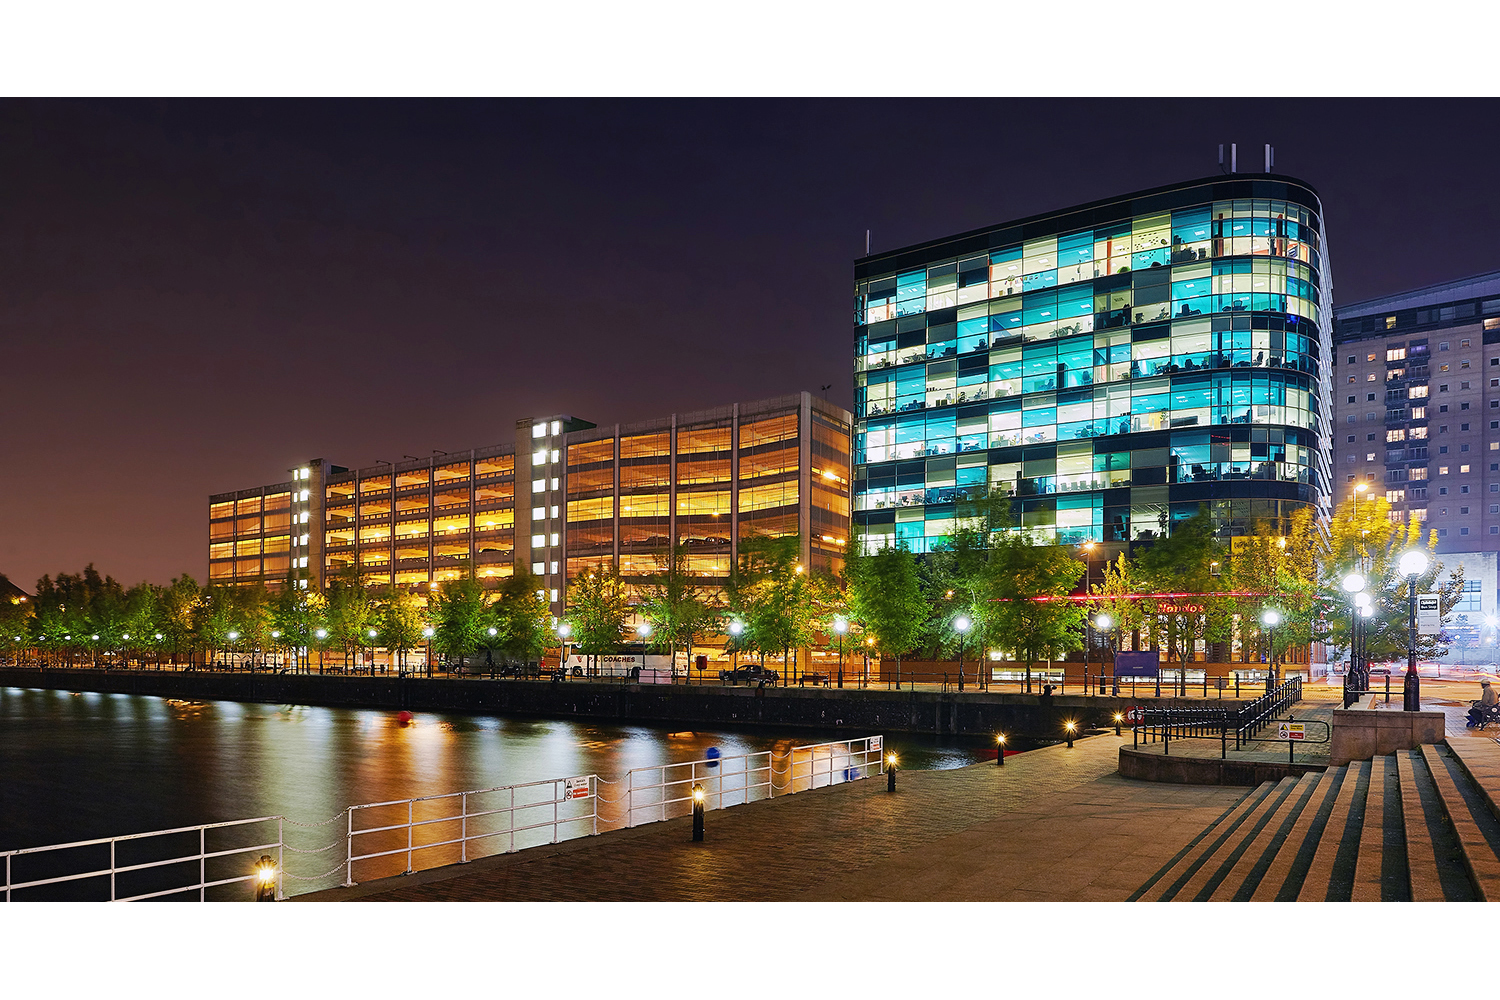 Architectural photography exterior: Salford quays, Salford, Greater Manchester, UK. Image (C) Matthewlingphotography.co.uk